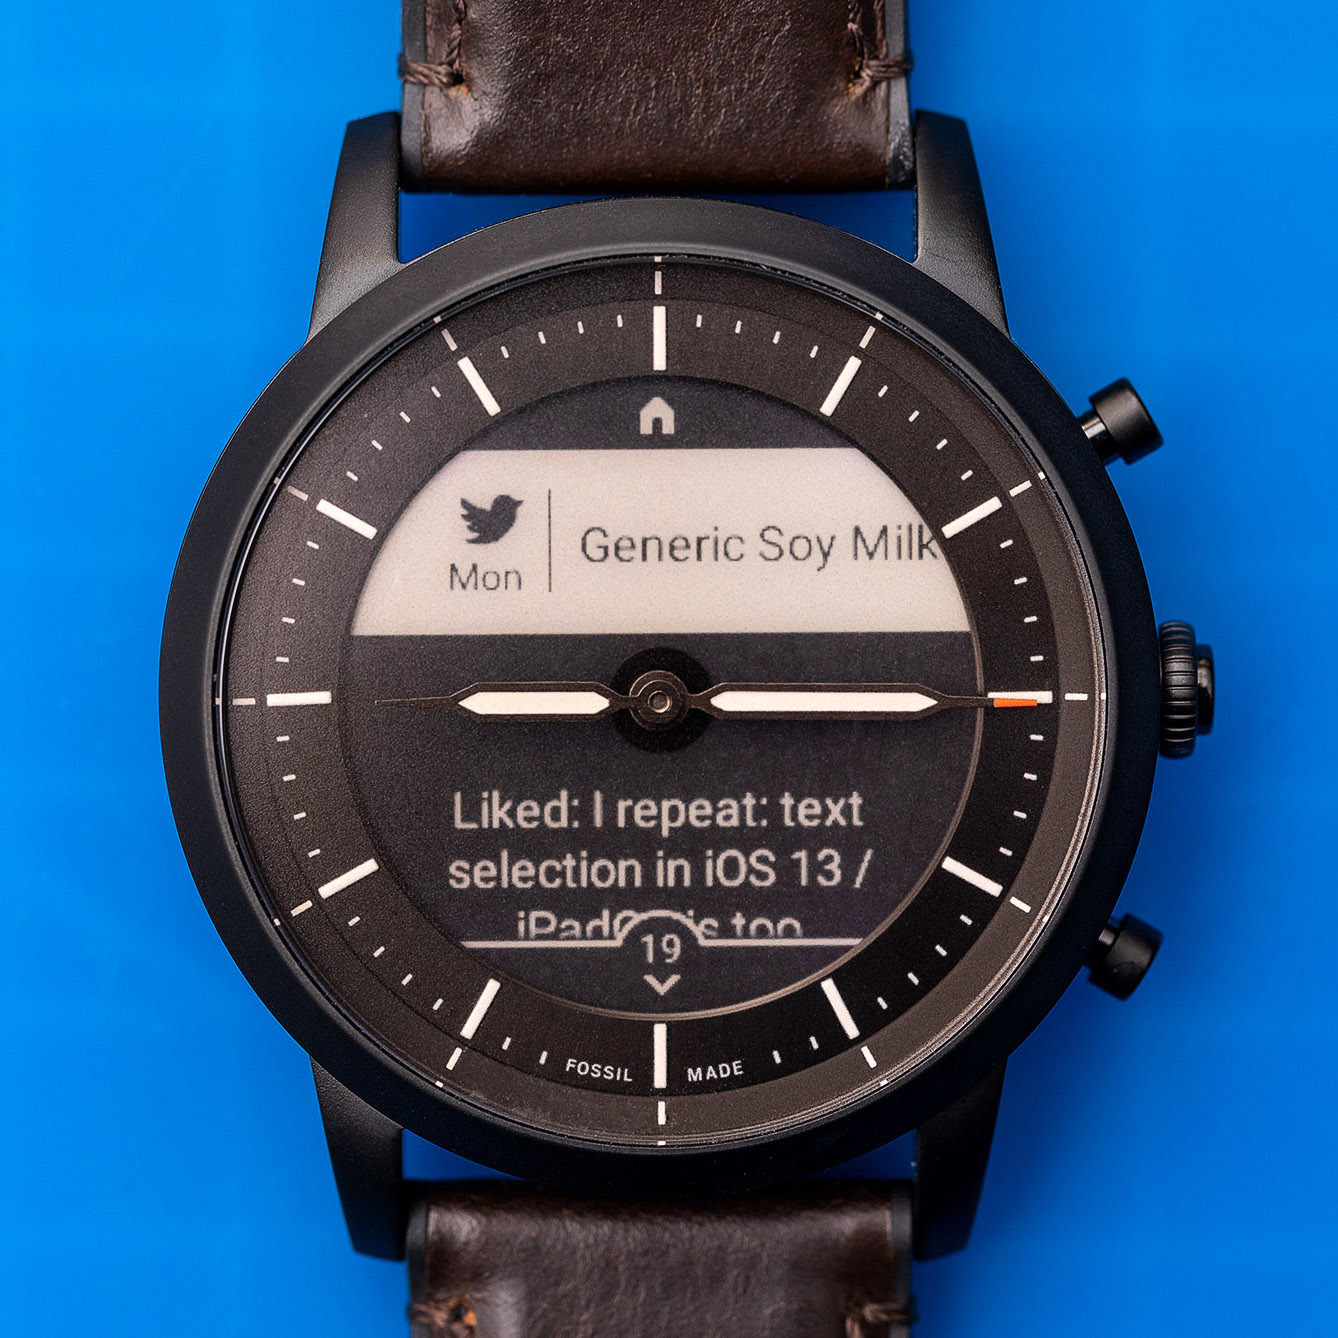 Fossil's Hybrid HR smartwatches have good battery life and ...